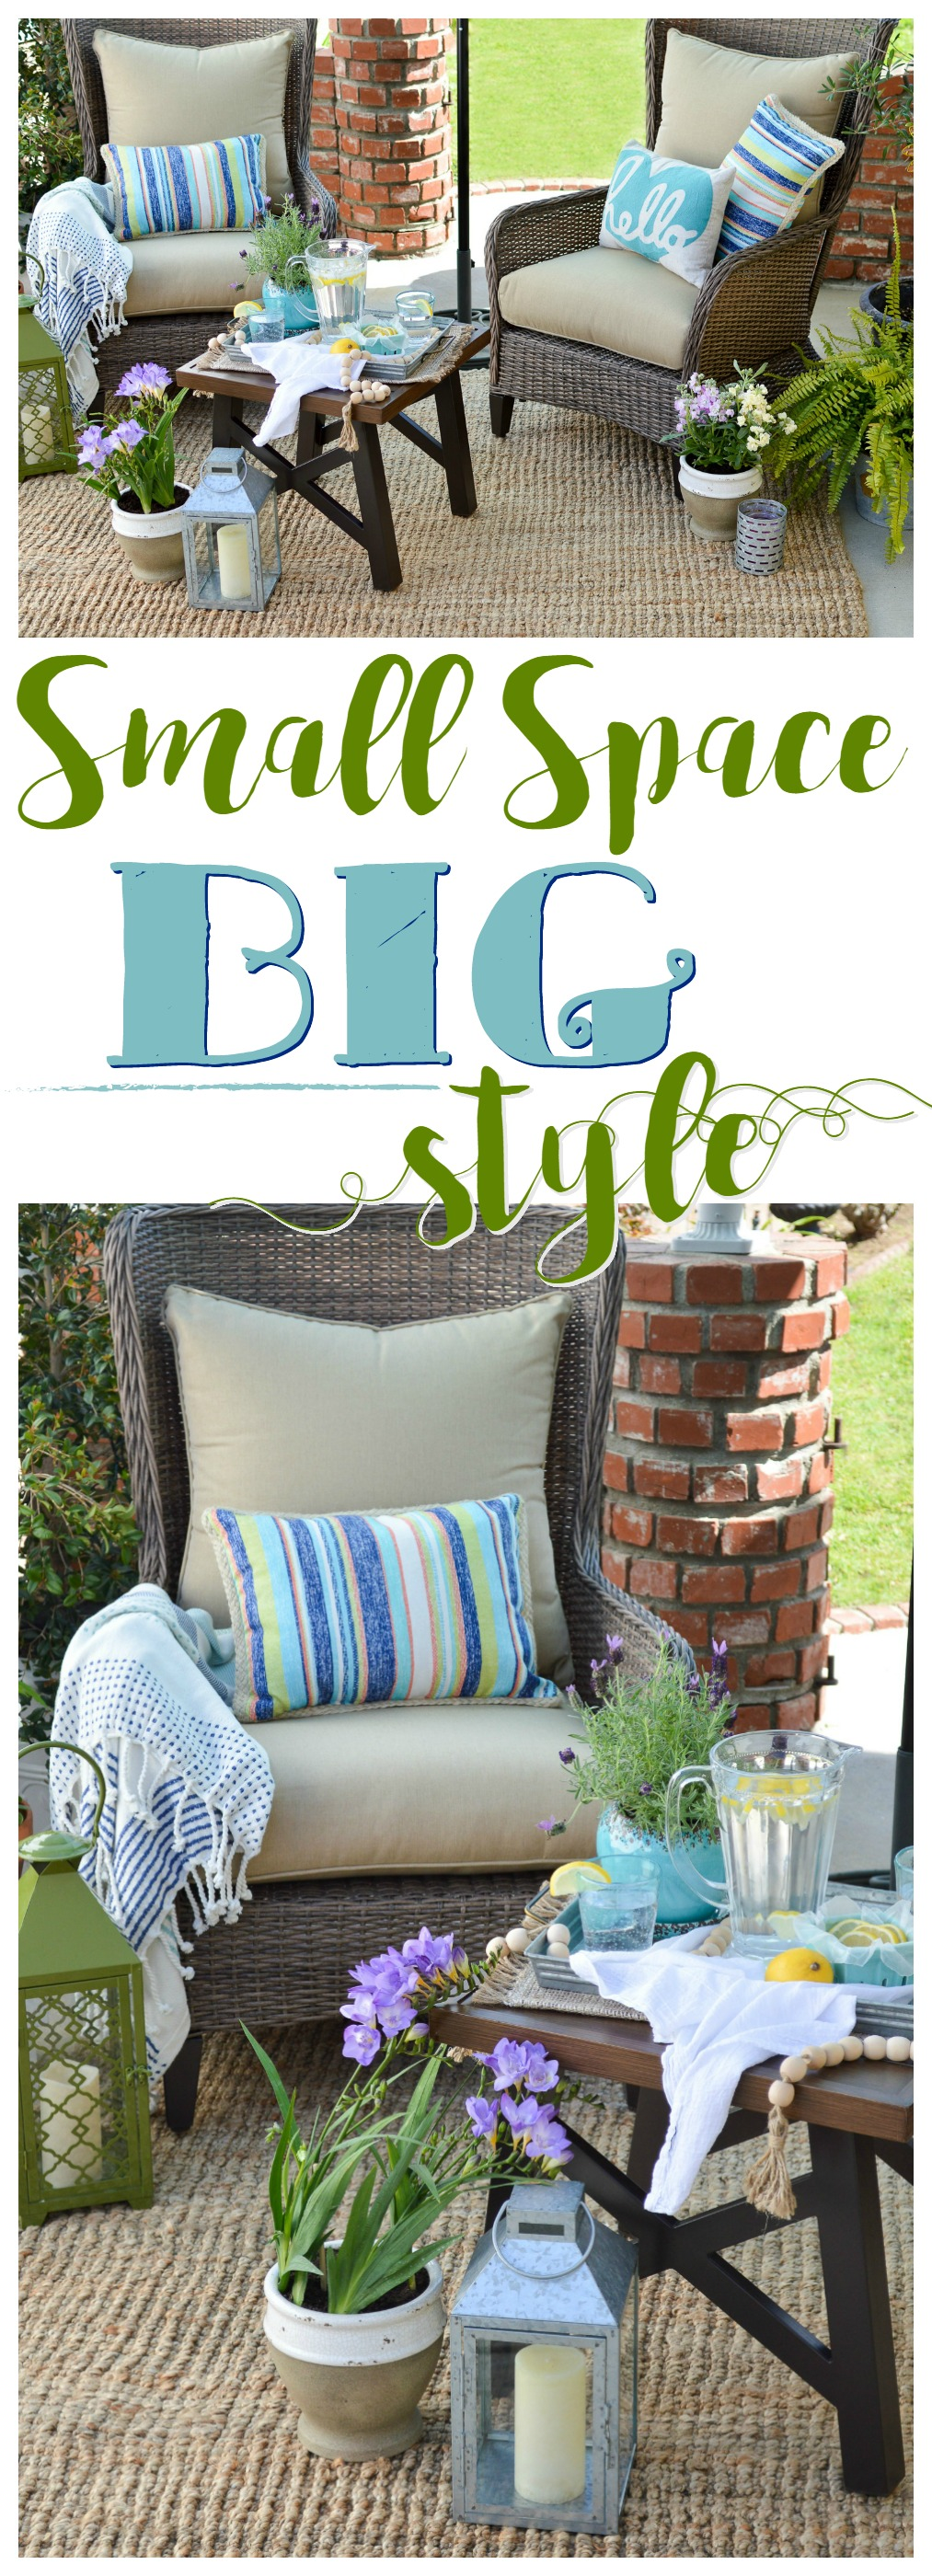 Small Space BIG Style! Affordable, Comfortable, Gorgeous Outdoor Furniture and Decorating with Better Homes & Gardens. See more at www.foxhollowcottage.com #sponsored #BHGatWalmart